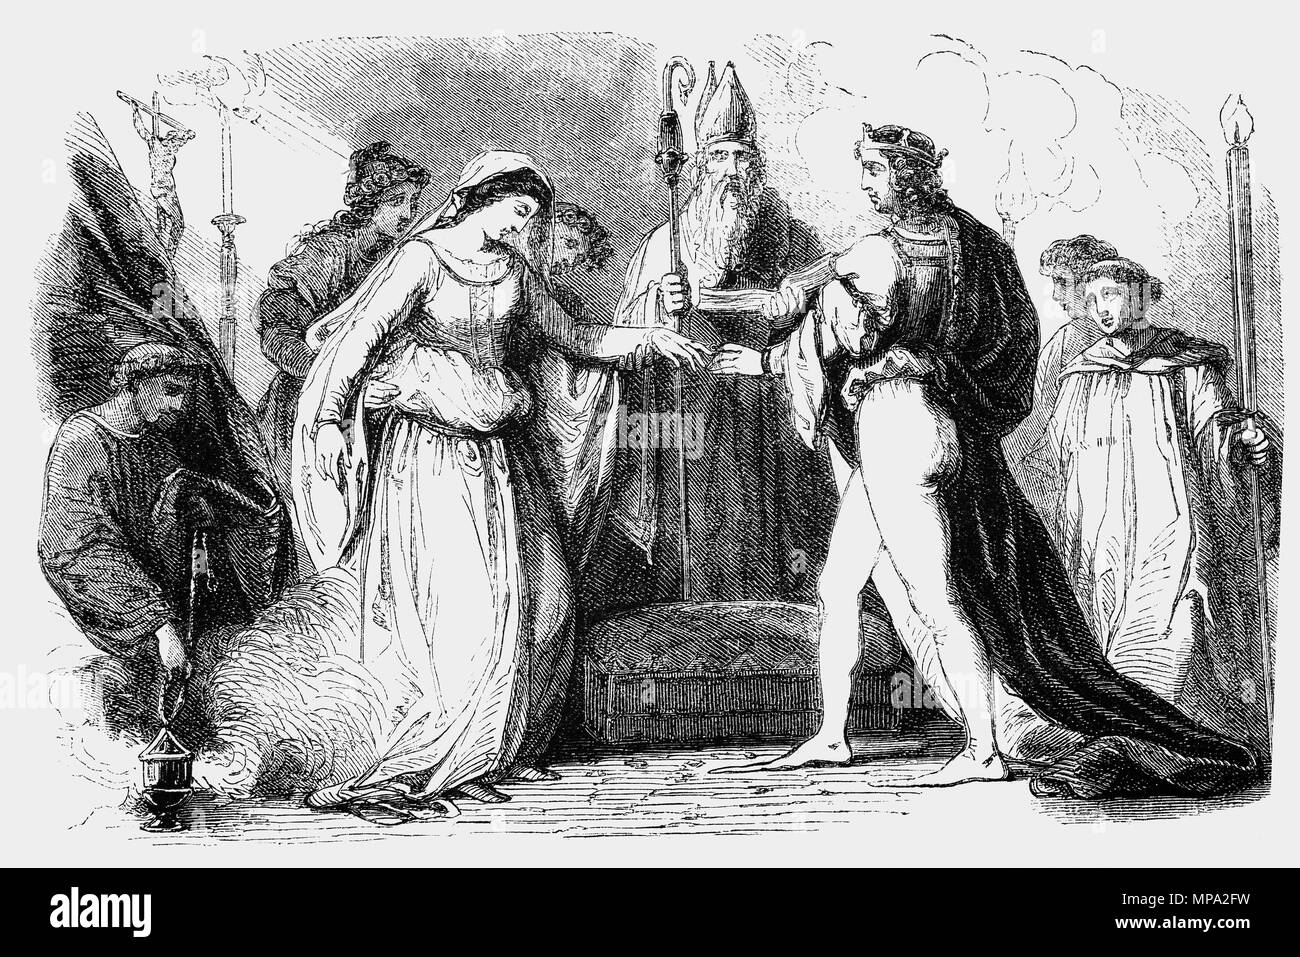 On 11 November 1100 King Henry I (1068–1135), fourth son of William the Conqueror, married Matilda, the daughter of Malcolm III of Scotland in Westminster Abbey on November 11, 1100. Although Henry and Matilda were emotionally close, their union was also politically motivated. Matilda was a member of the West Saxon royal family, being the niece of Edgar the Ætheling, the great-granddaughter of Edmund Ironside and a descendant of Alfred the Great.  For Matilda, an ambitious woman, it was an opportunity for high status and power in England. - Stock Image